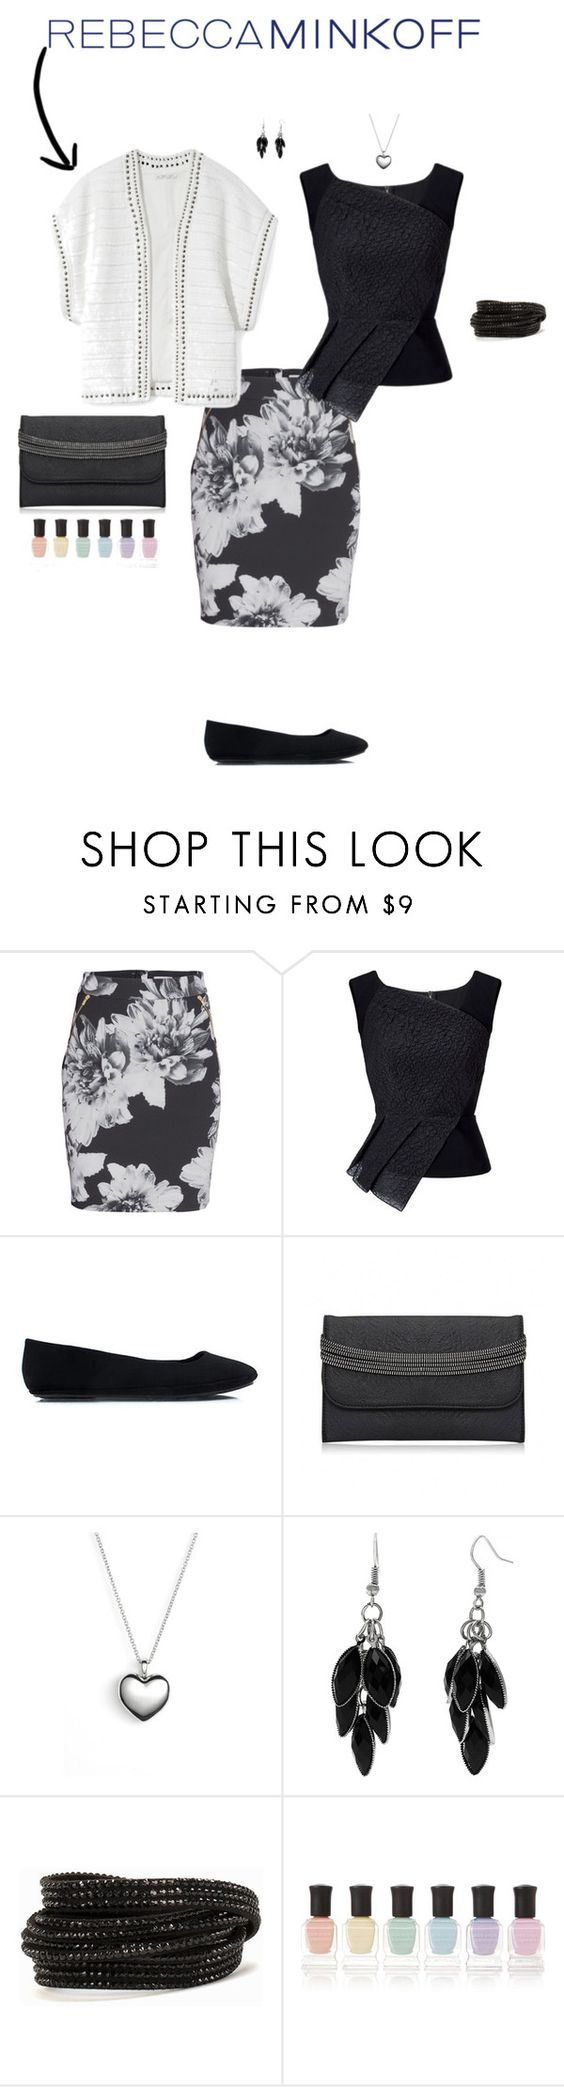 """""""Untitled #7436"""" by erinlindsay83 ❤ liked on Polyvore featuring Rebecca Minkoff, Roland Mouret, Pandora, Alexa Starr, Pieces, Deborah Lippmann, women's clothing, women, female and woman"""